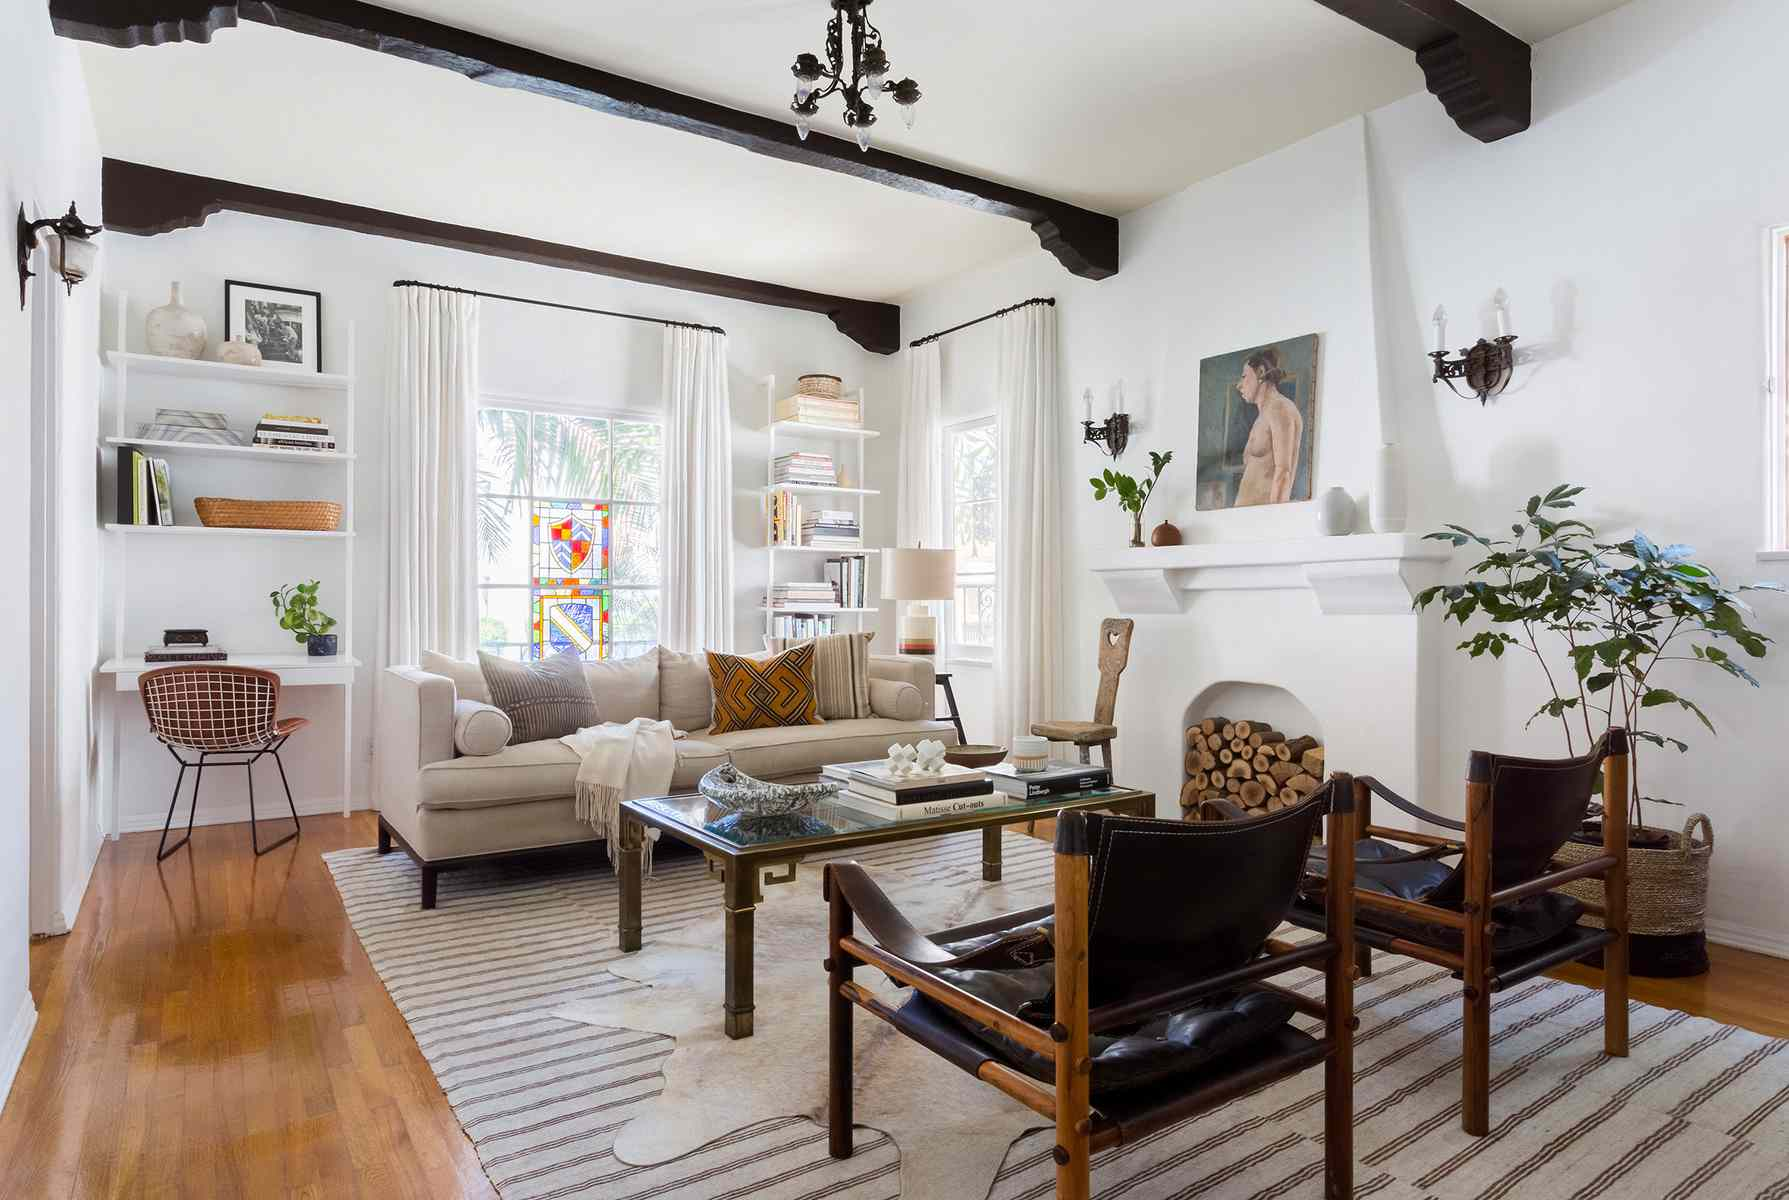 Eclectic living room with new and vintage pieces